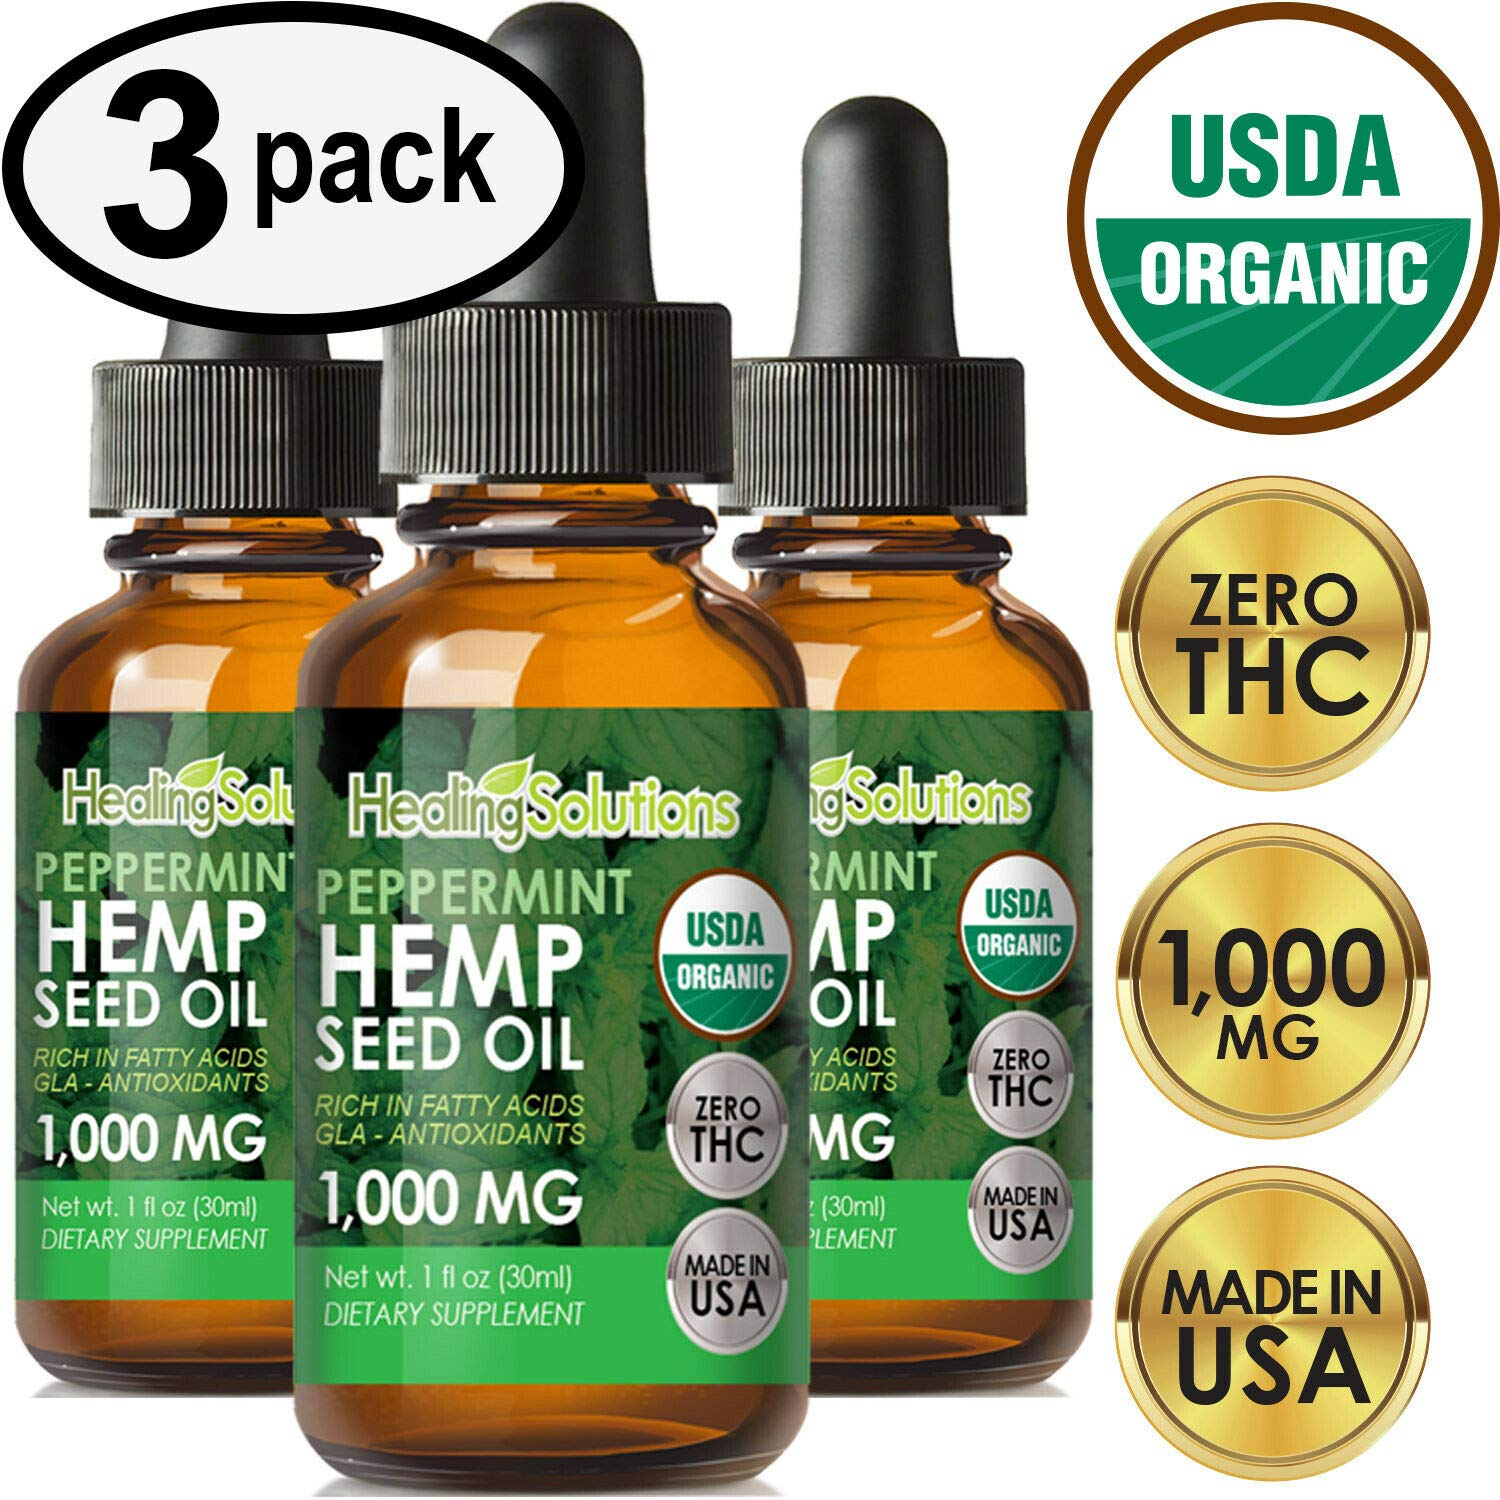 Peppermint Hemp Oil Extract for Pain Relief, Stress, Anxiety, Sleep 1000MG - (3 PACK)